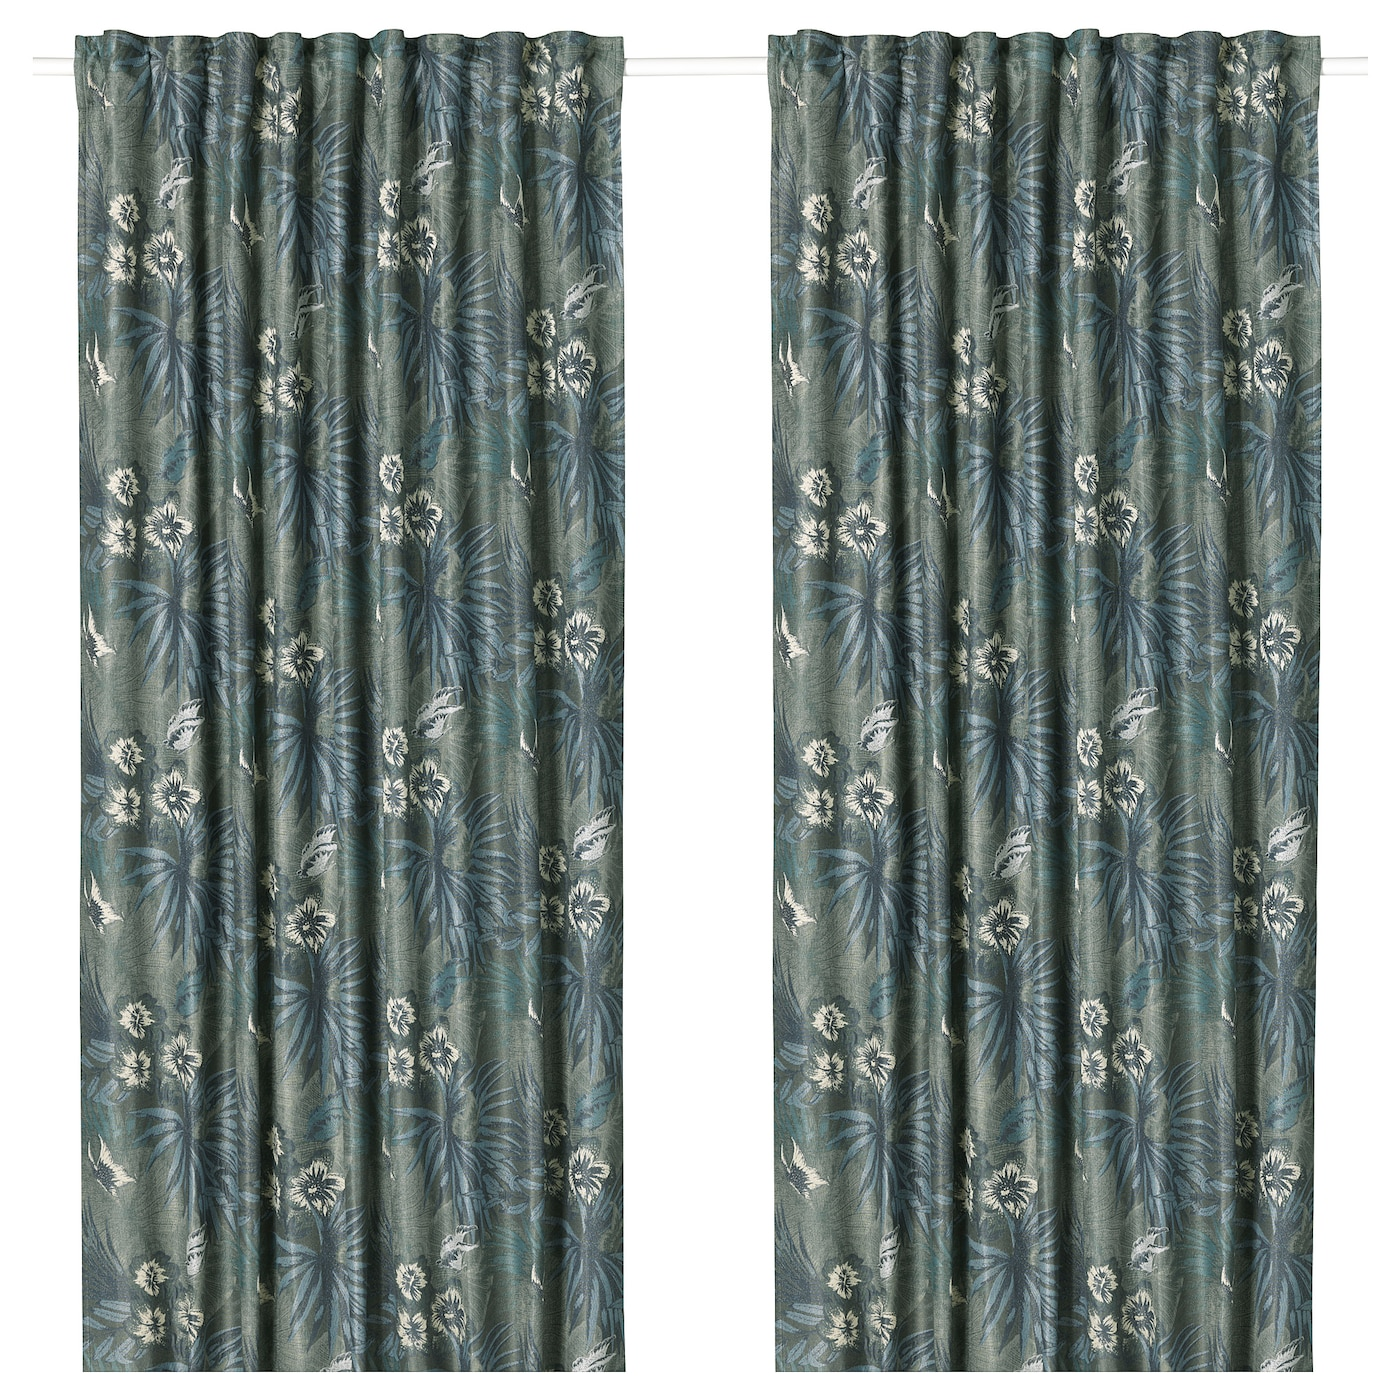 IKEA TORGERD curtains, 1 pair The curtains can be used on a curtain rod or a curtain track.